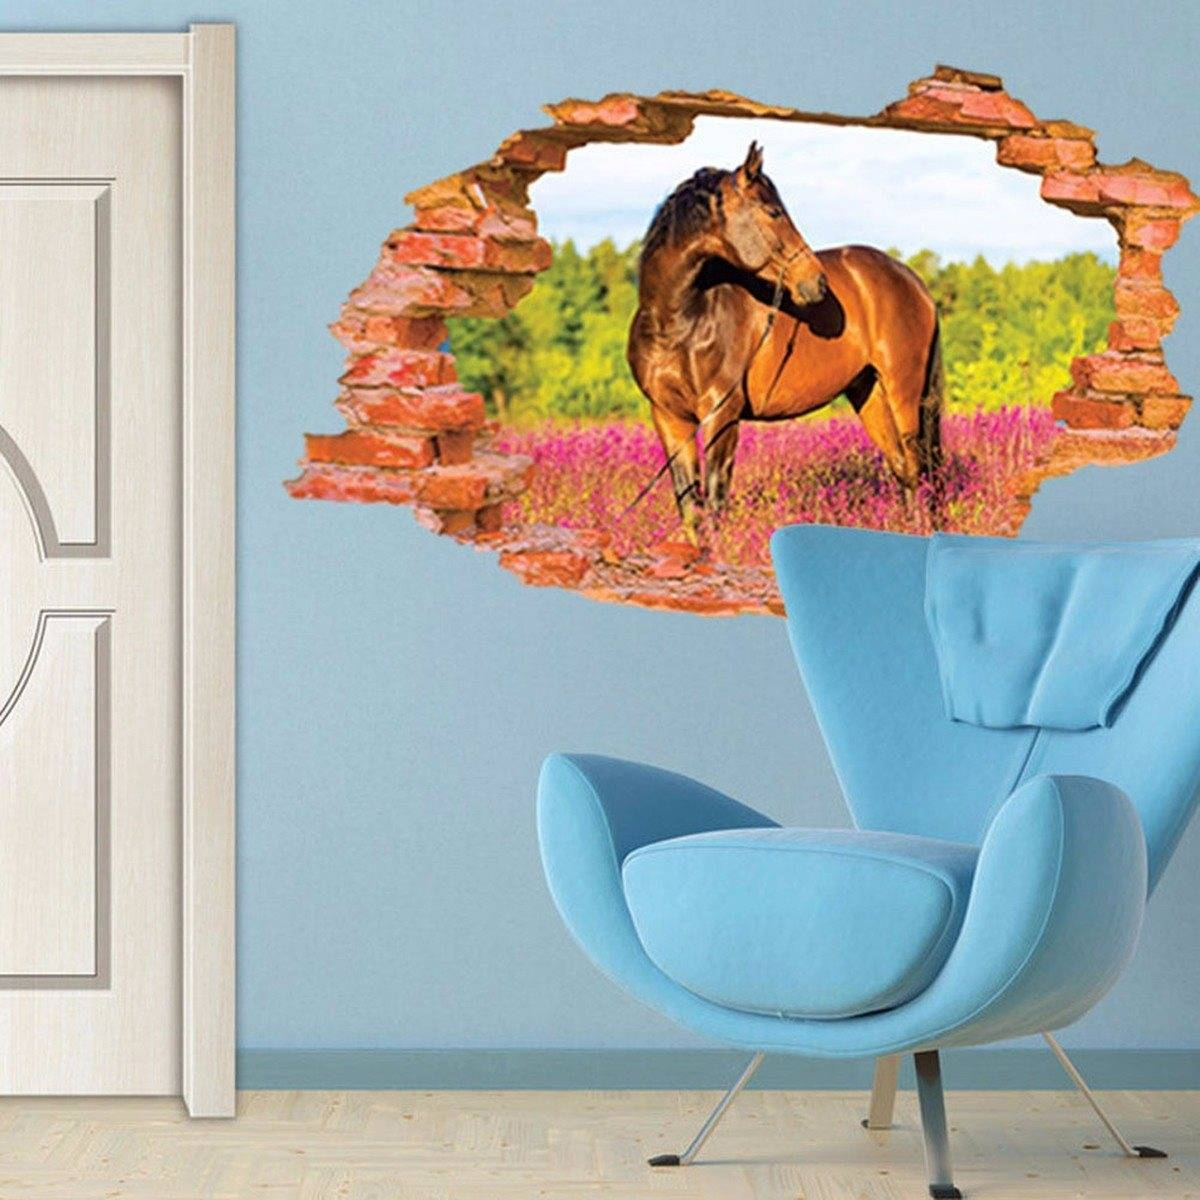 Removable Vinyl 3D Broken Horse Animal Wall Stickers Landscape In Recent Vinyl 3D Wall Art (View 16 of 20)